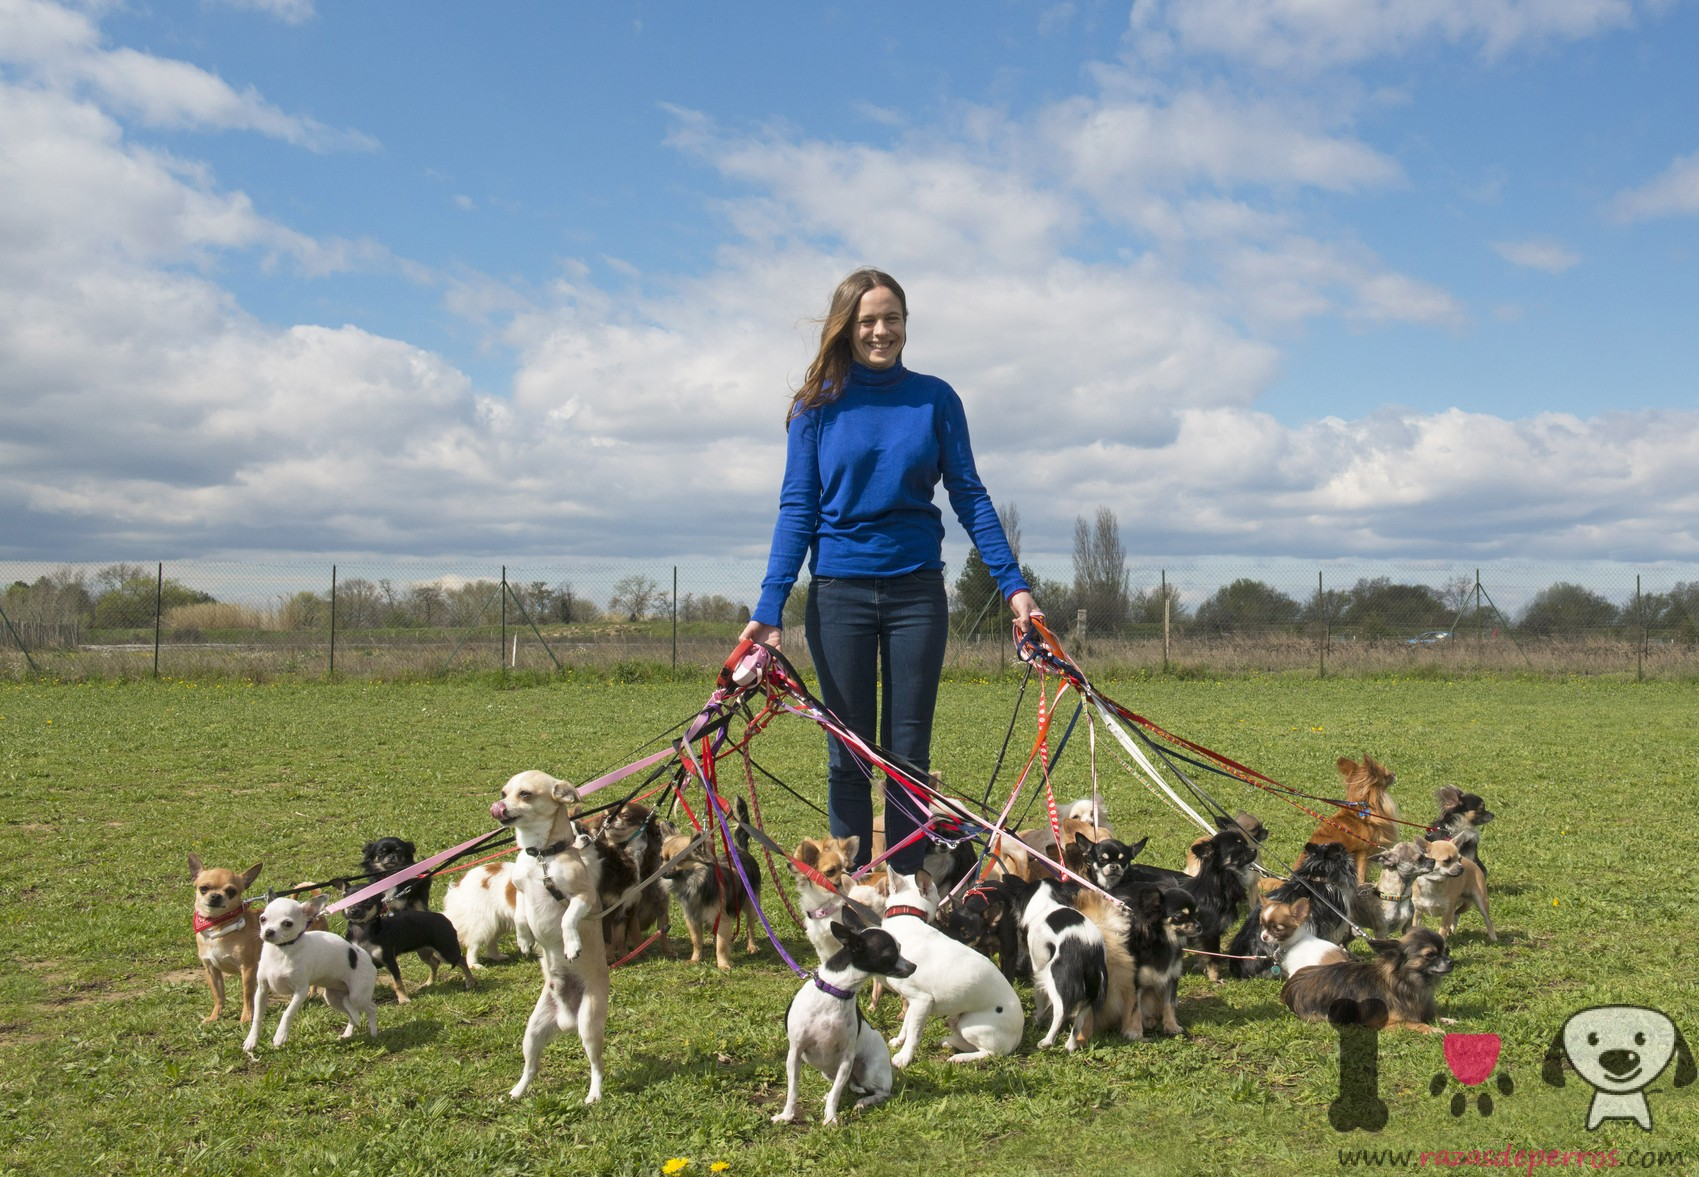 How To Take Dogs Together Walking Dog Sitter